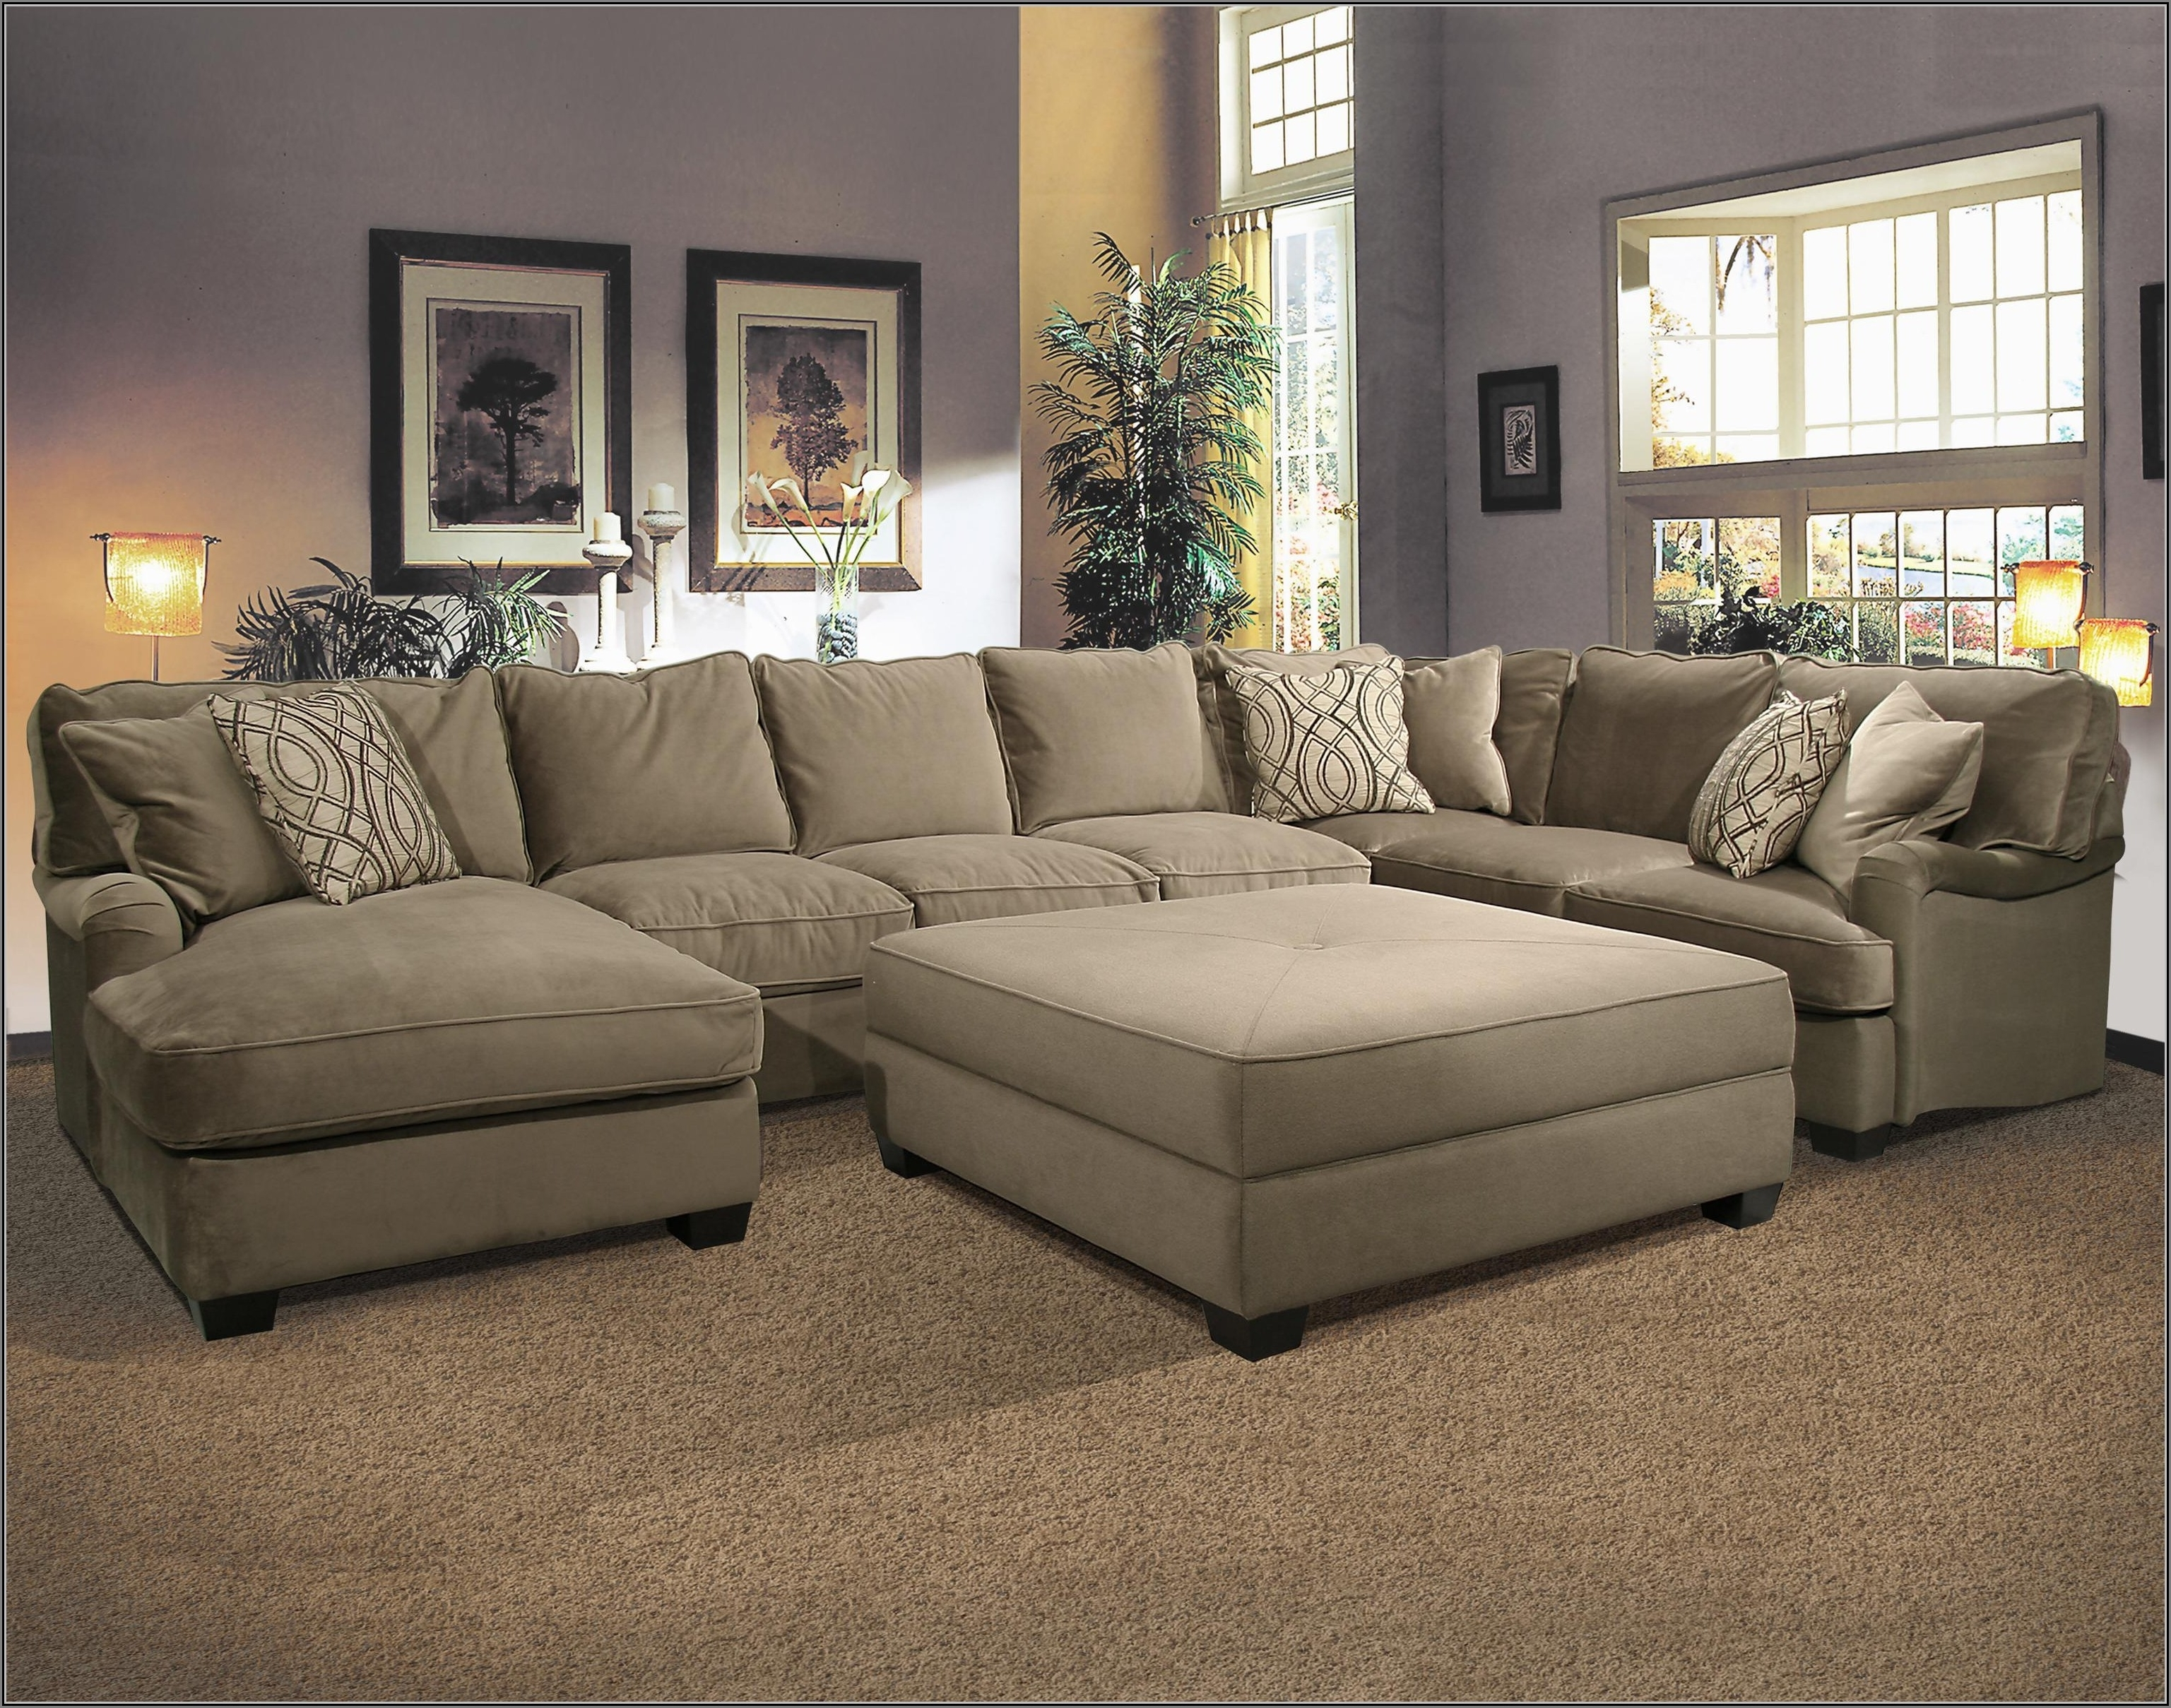 Most Up To Date Sectional Sofath Oversized Ottoman Chenille Fabric Matching Pertaining To Sectional Sofas With Oversized Ottoman (View 5 of 15)